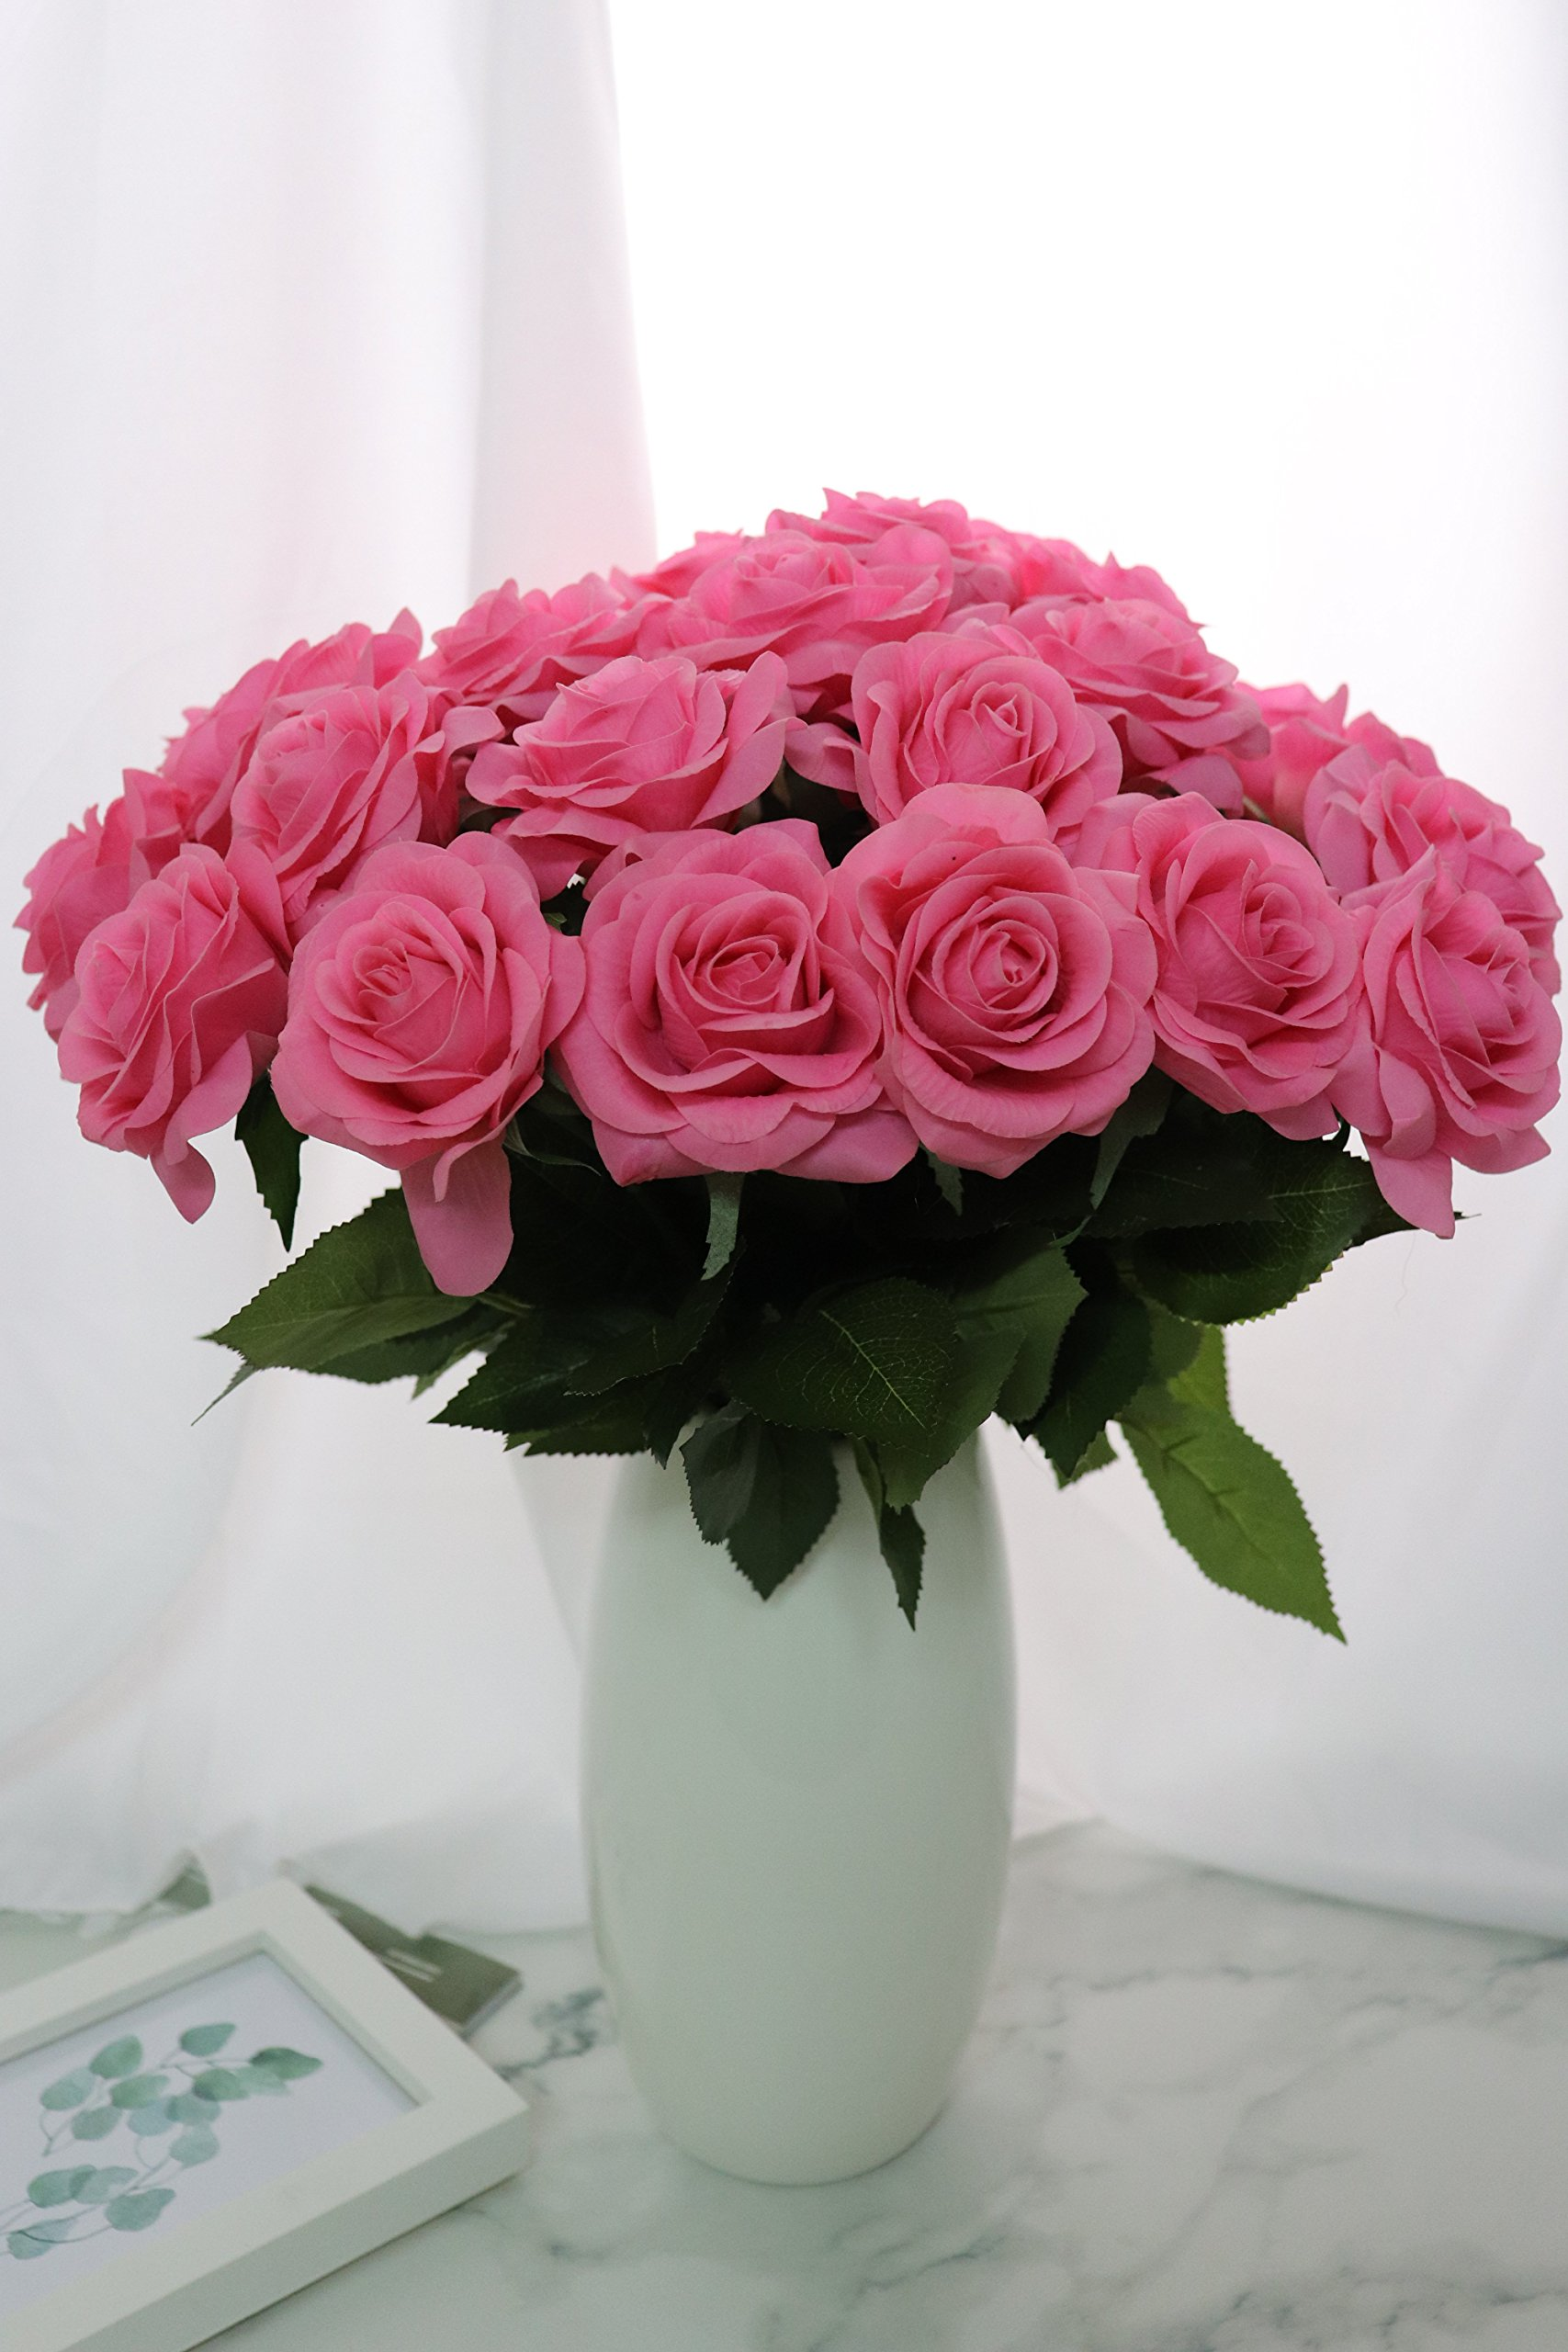 KISMEET-Artificial-Roses-Fake-Silk-Flowers-Real-Touch-Long-Stem-for-Wedding-Party-Home-Office-Outdoor-Craft-Decoration-Pack-of-10-Pink